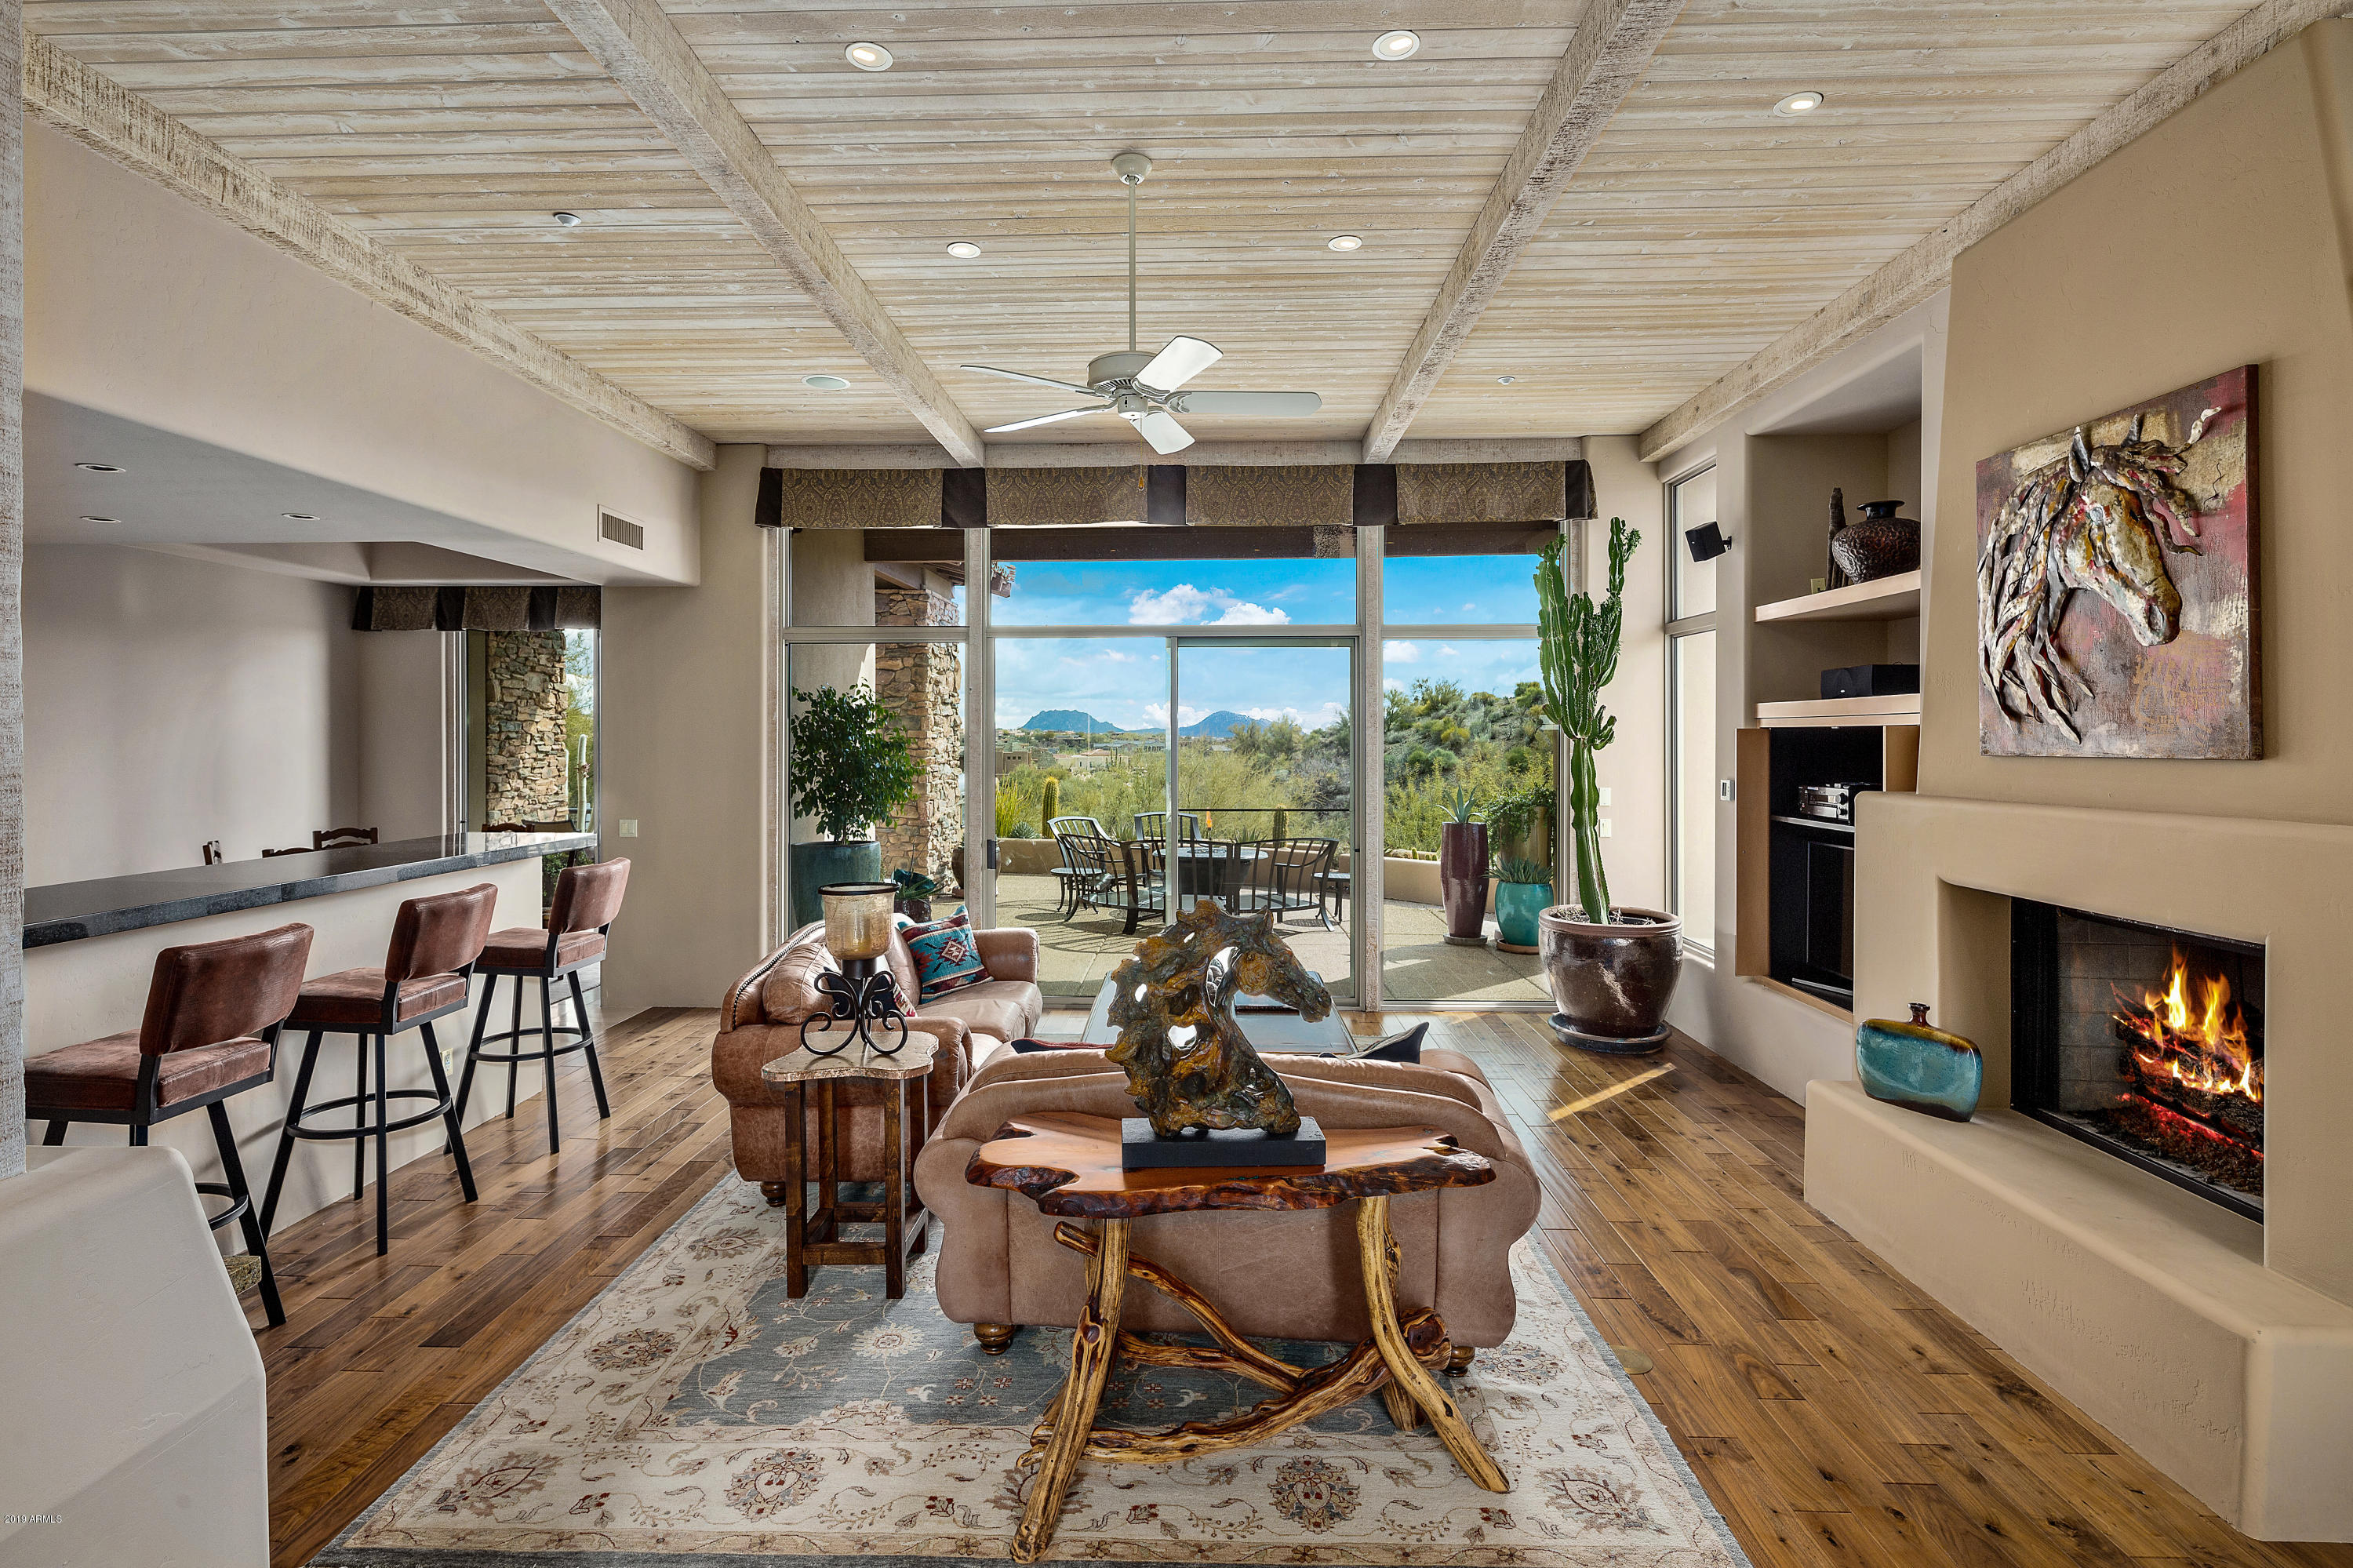 Exploring Home Upgrades: 6 Renovation Tips for your Desert Mountain Home